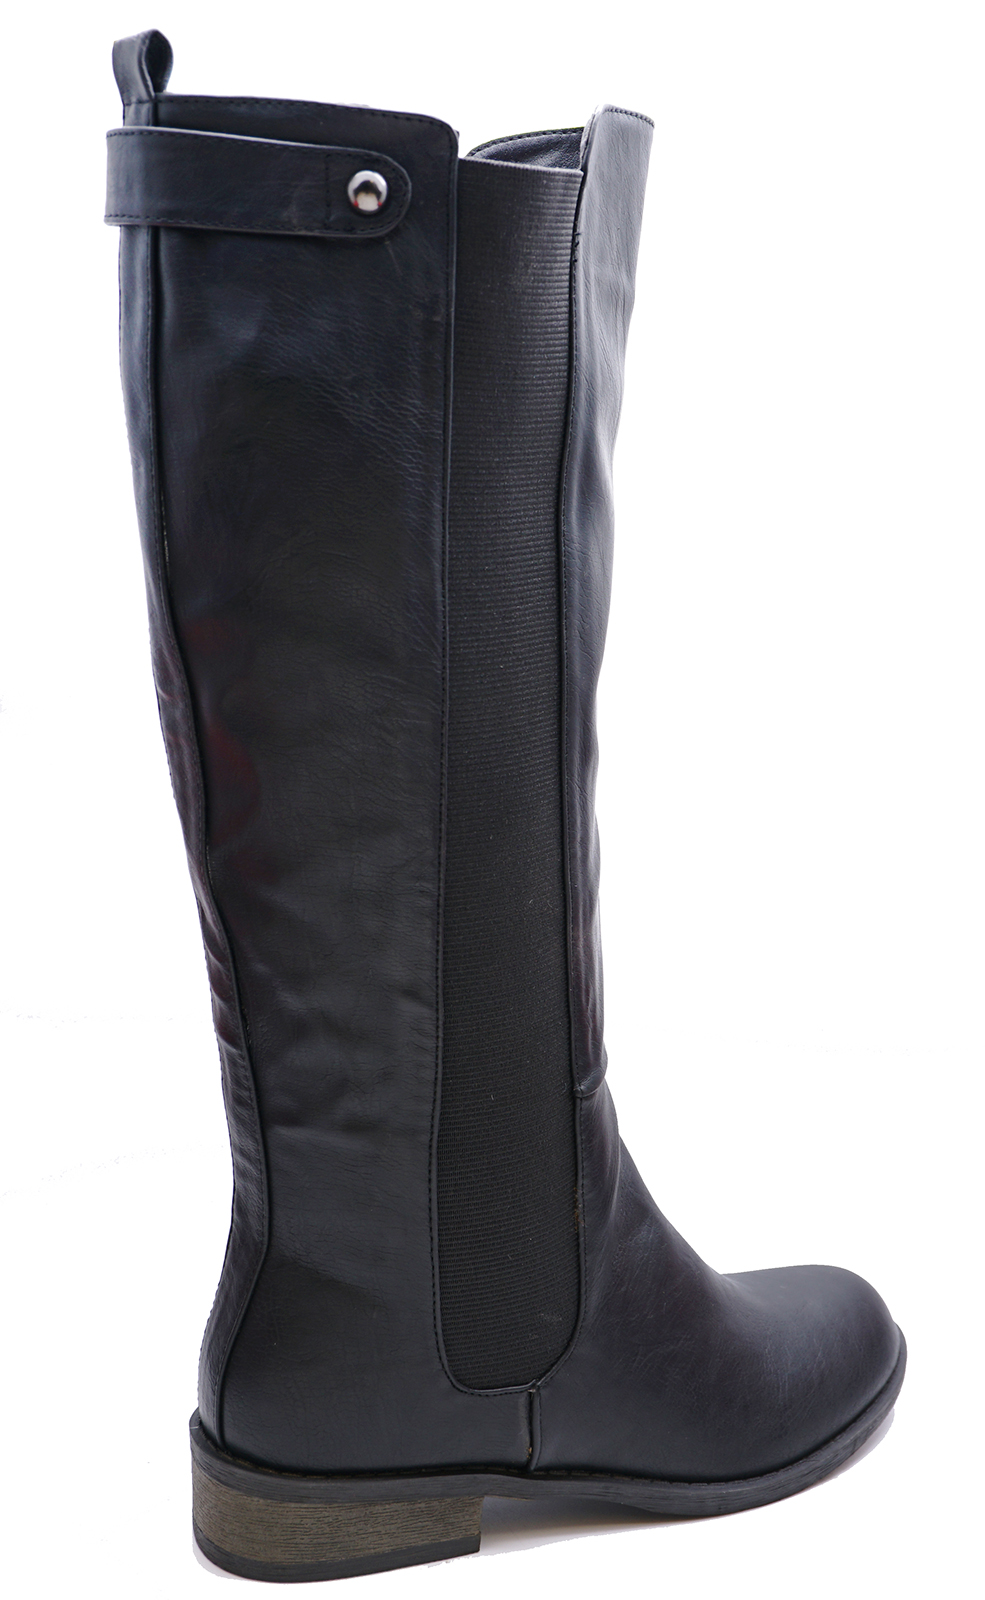 LADIES-BLACK-FLAT-STRETCH-ZIP-UP-KNEE-HIGH-TALL-RIDING-BOOTS-COMFY-SHOES-3-8 thumbnail 7